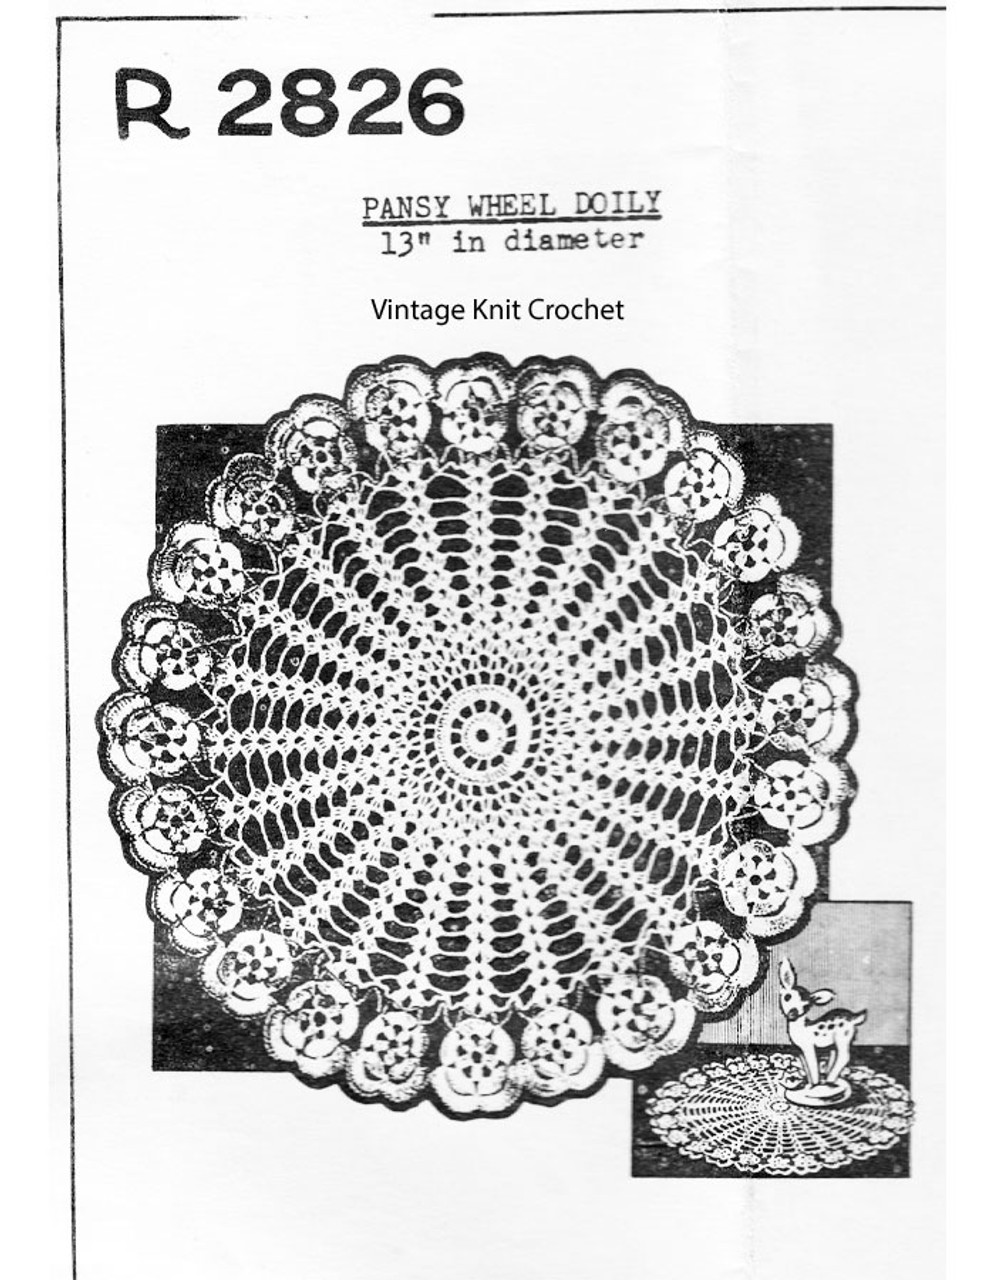 Crochet Pansy Wheel Doily Pattern, Peggy Roberts 2826